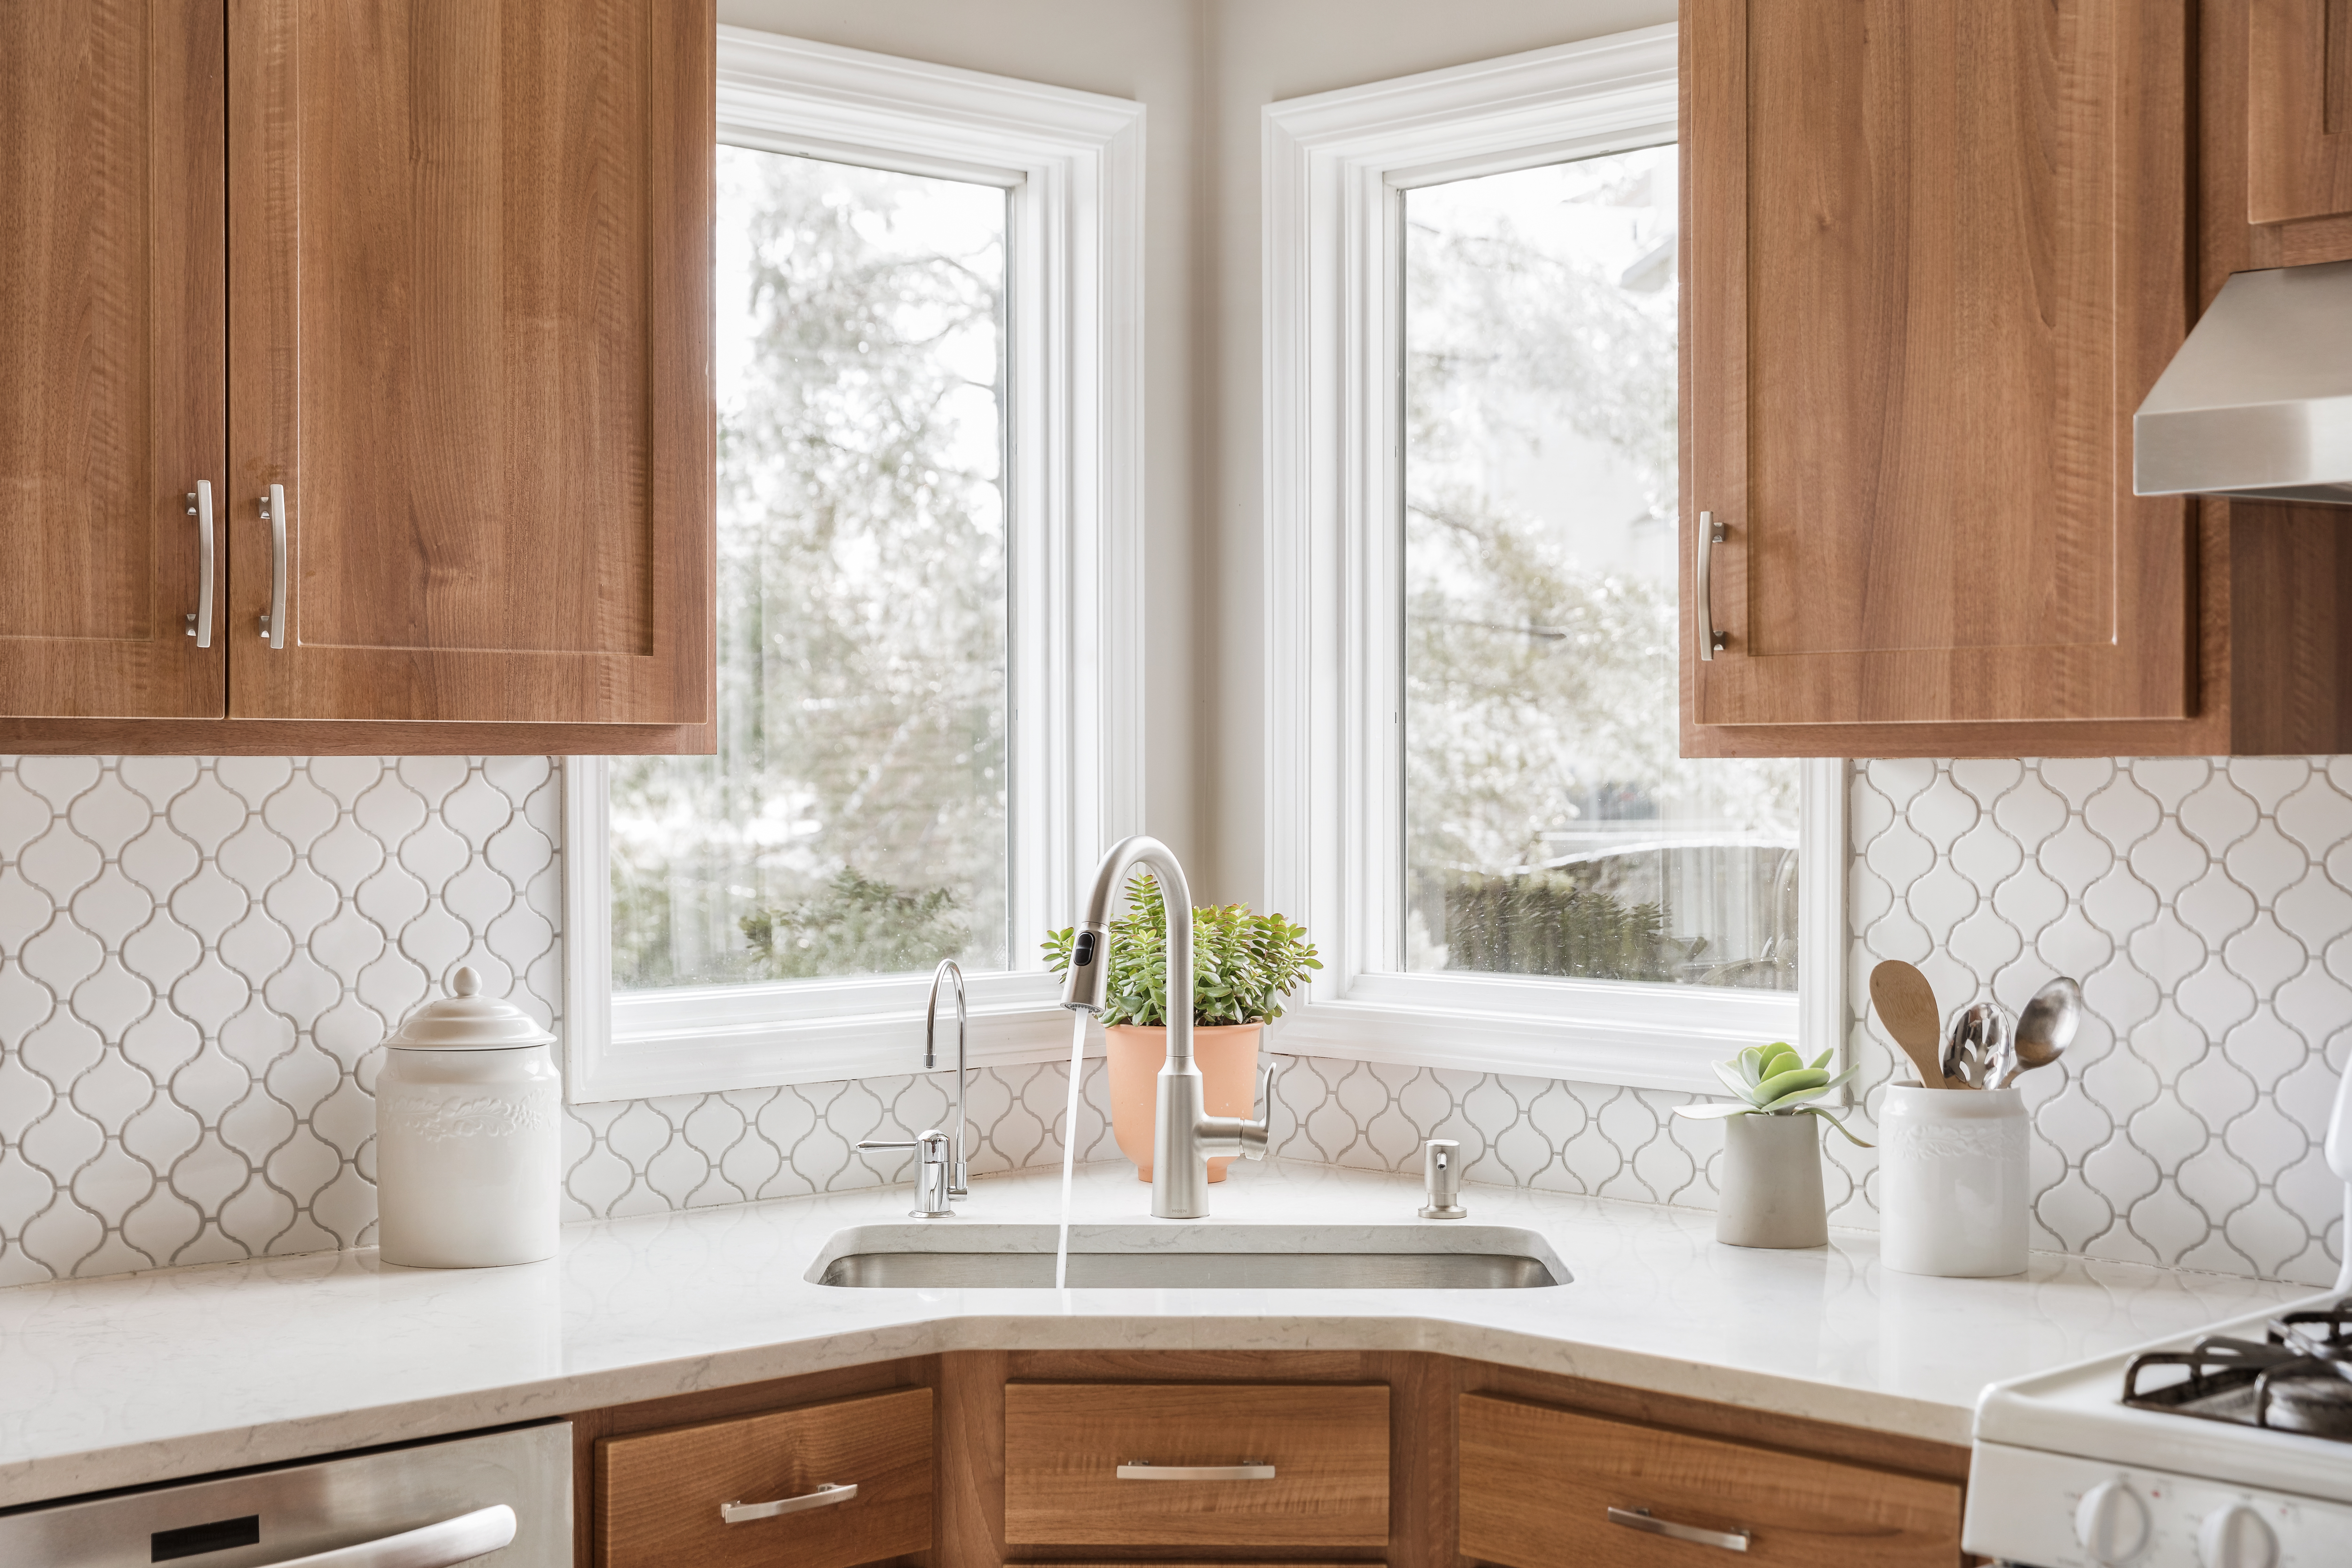 Jan Remodel of the Month Sink